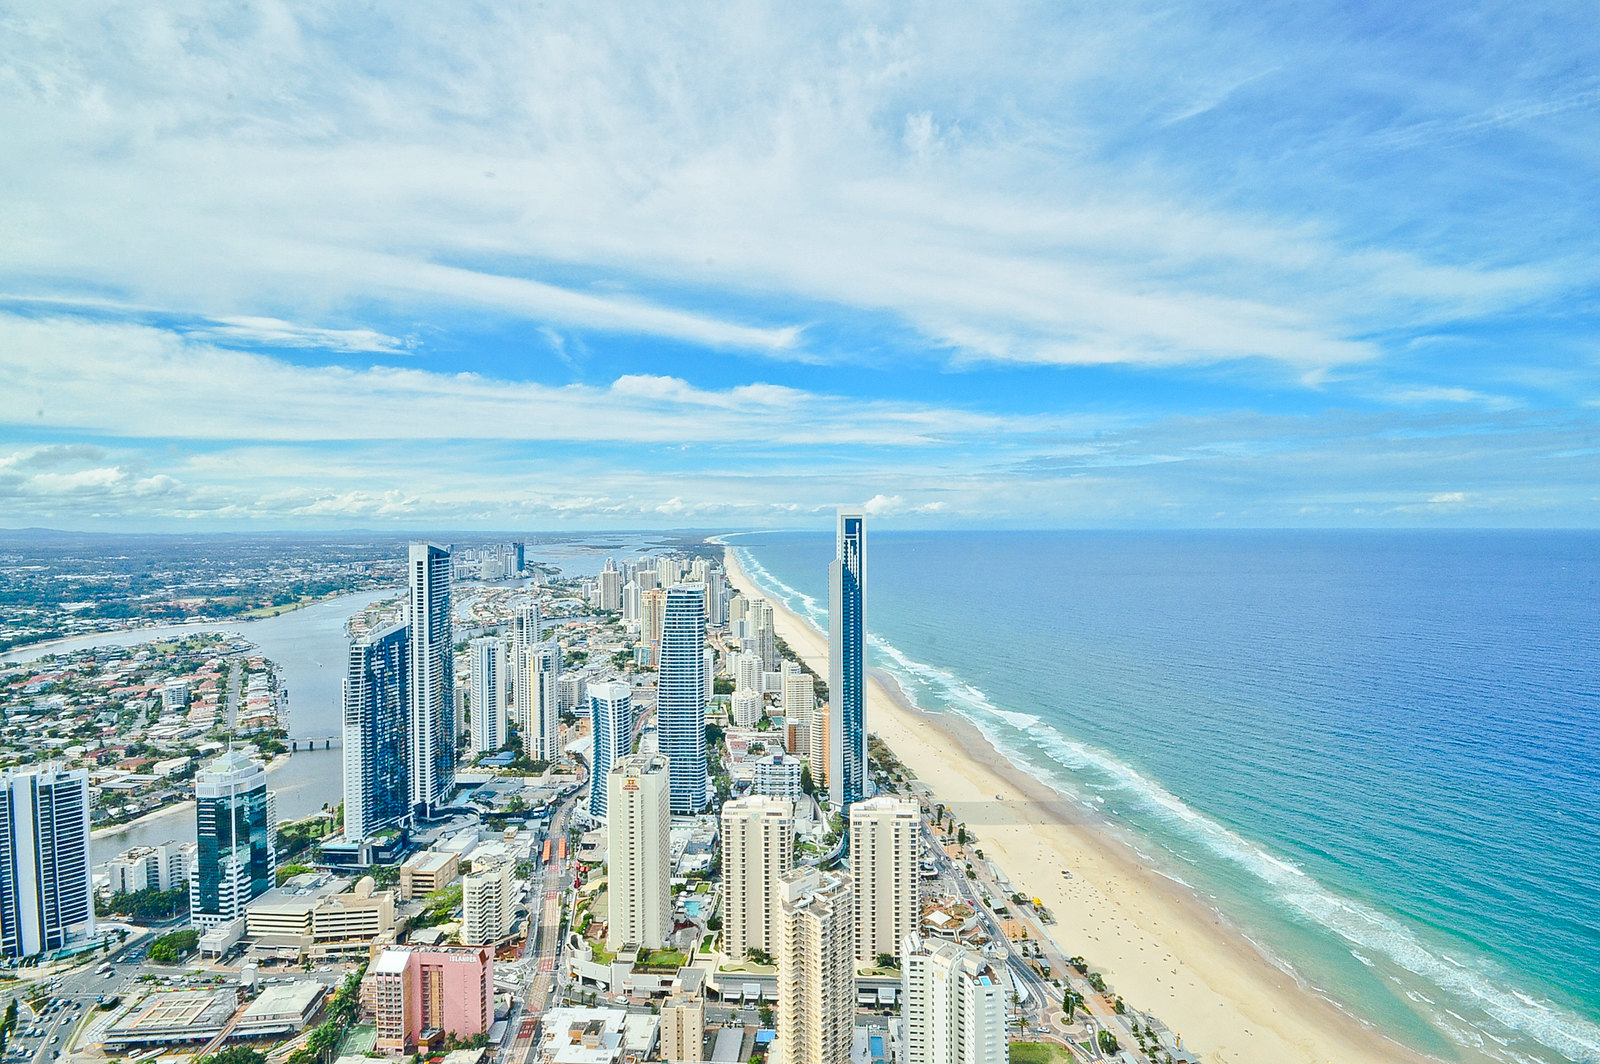 Q1 Observation Deck, Surfers Paradise